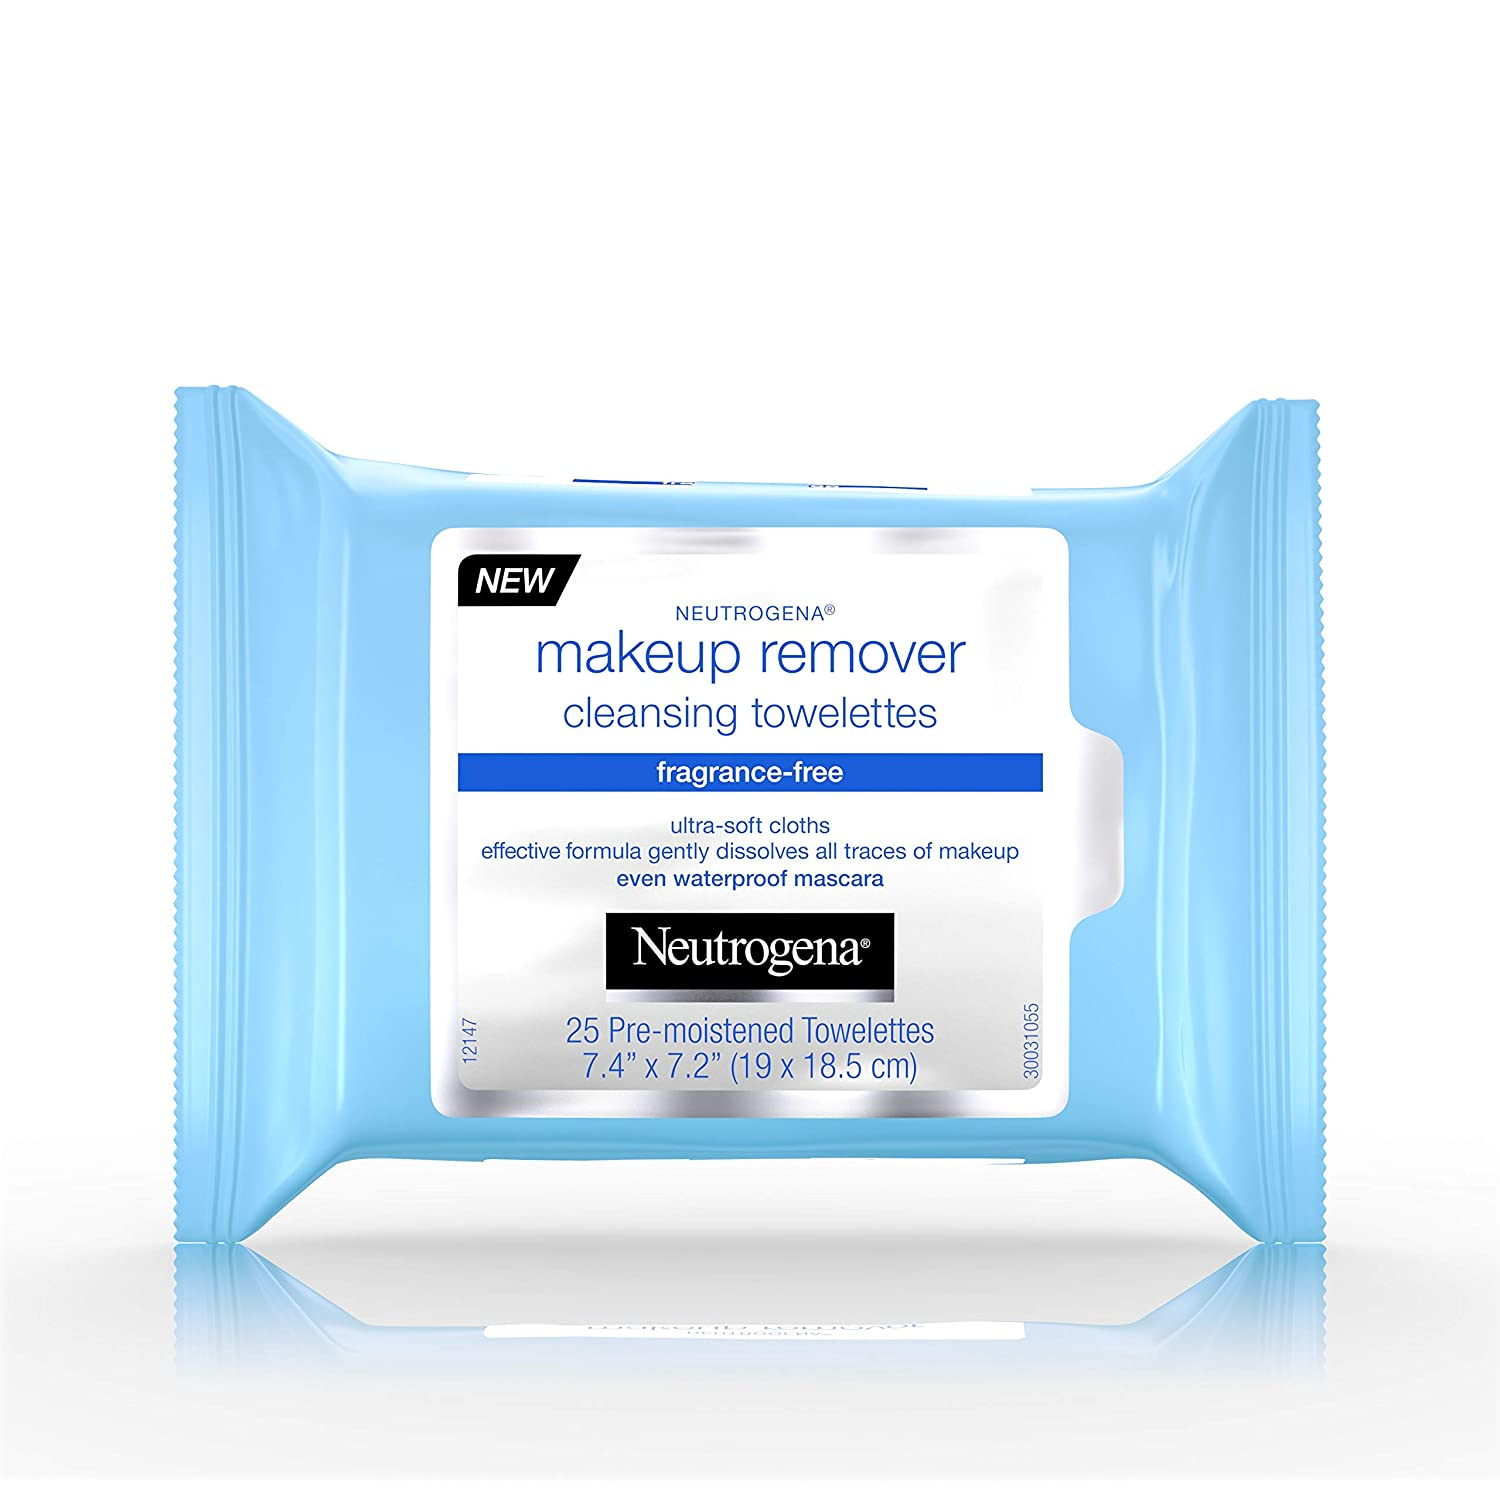 Neutrogena Makeup Remover Cleansing Towelettes, Fragrance Free, 25 ct (Pack of 5)